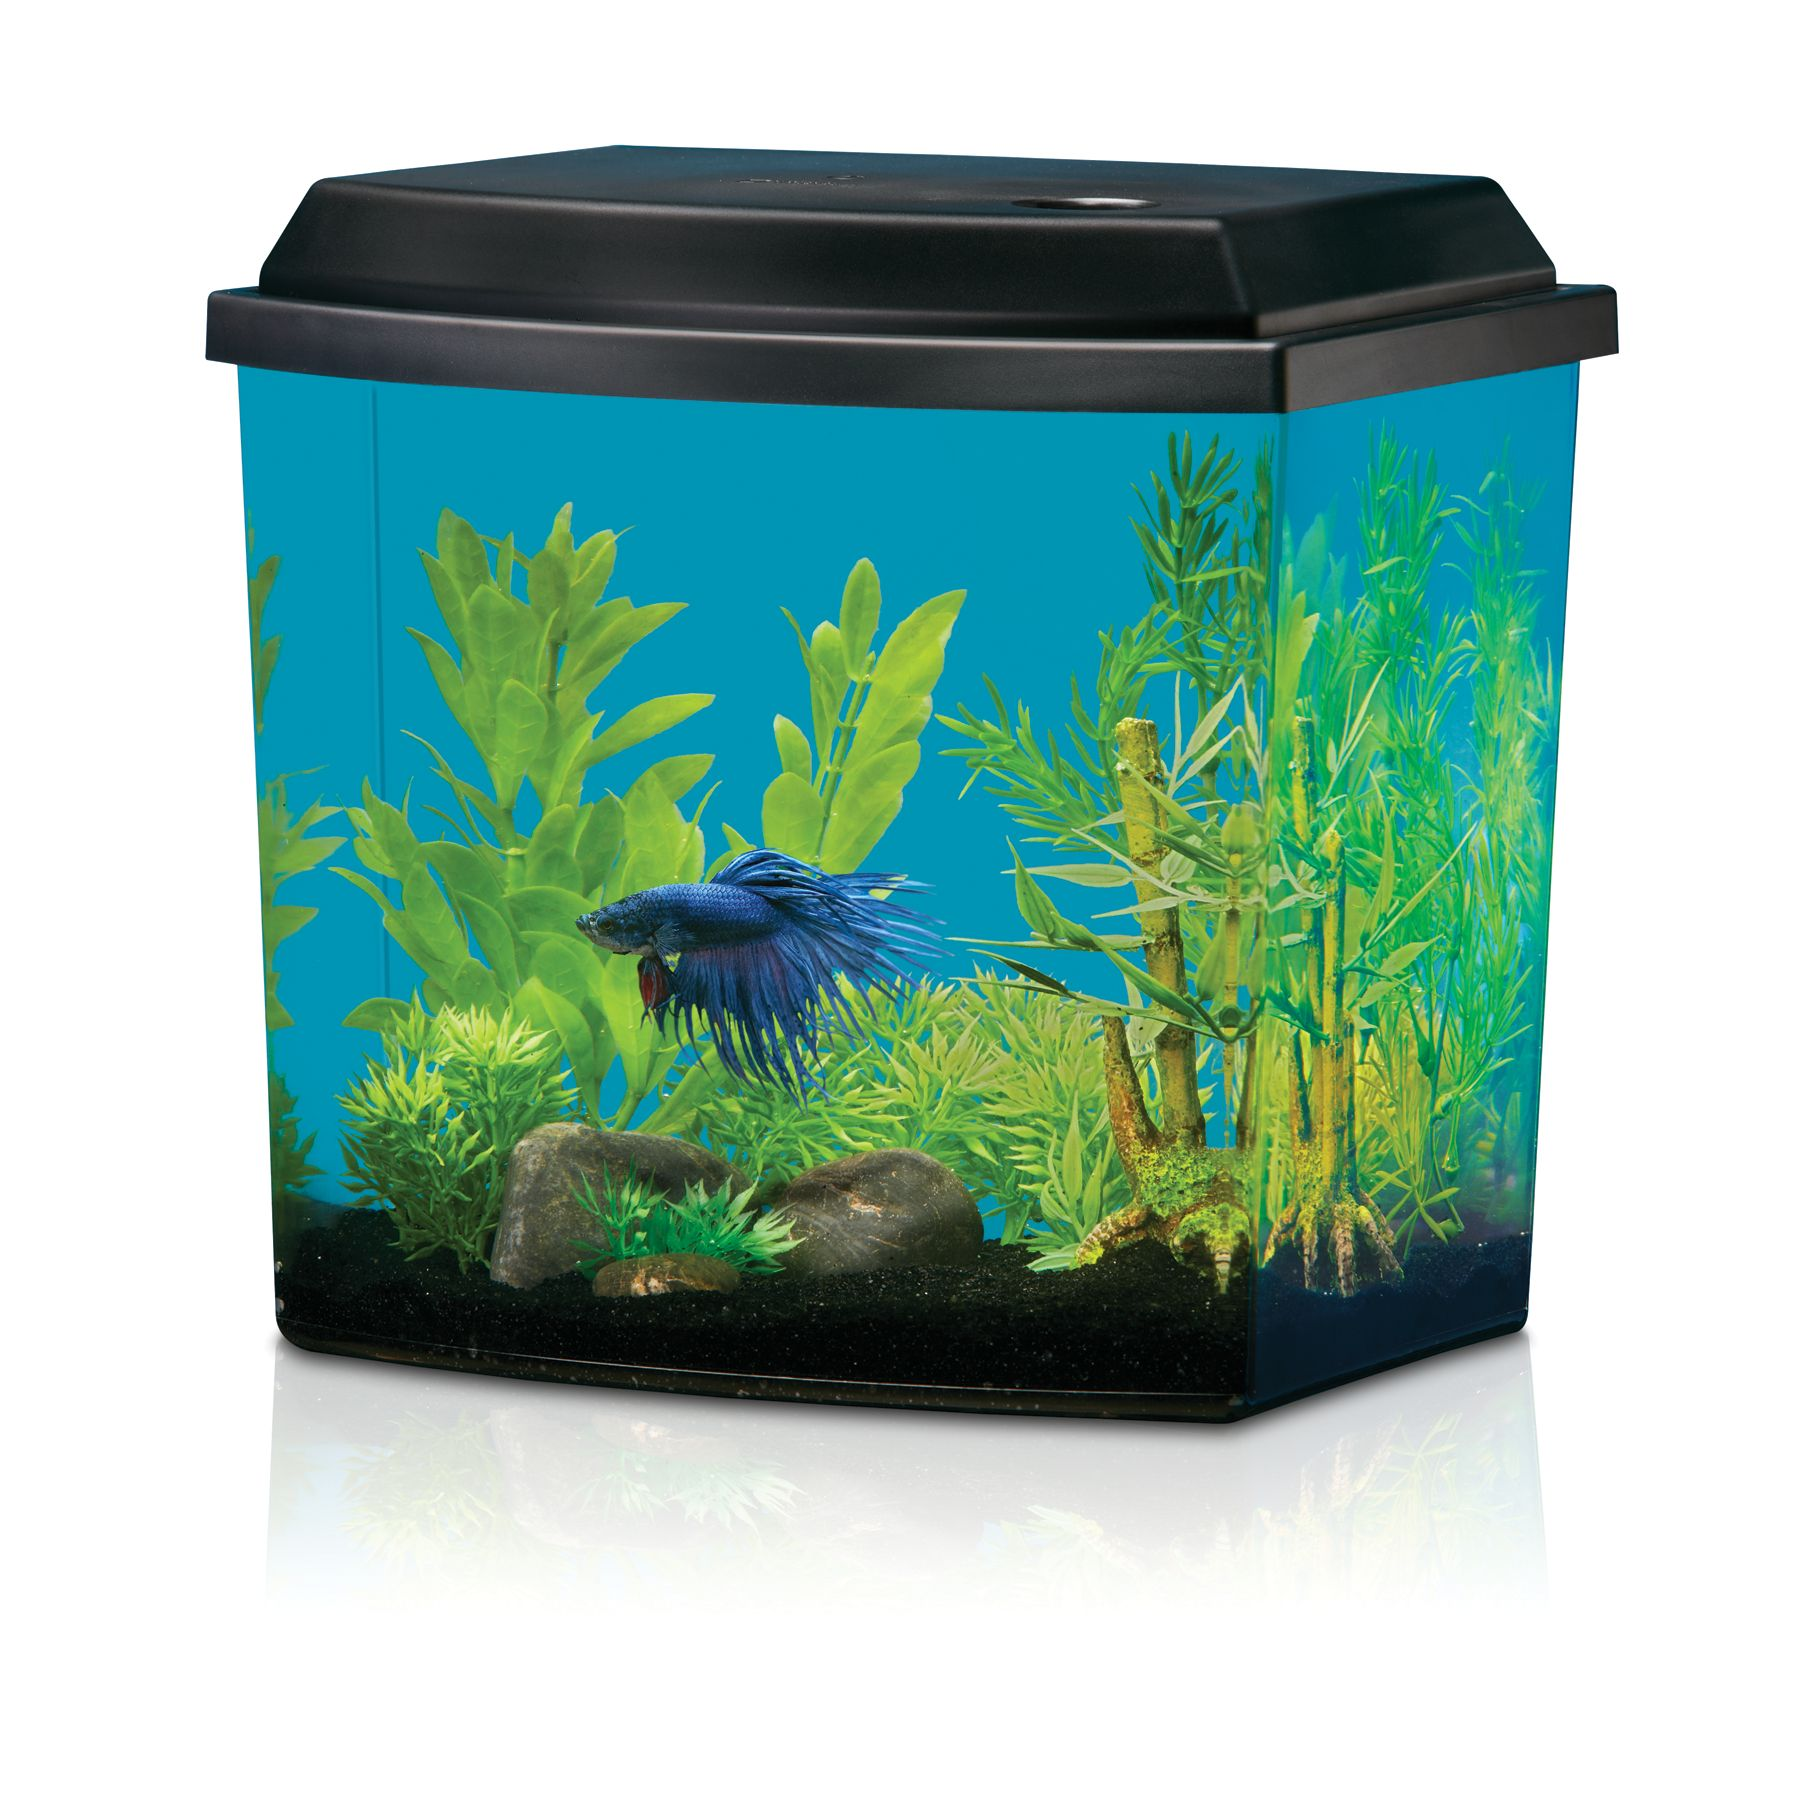 National Geographic, Half-Moon Aqua Oasis Starter Kit size: 2.5 Gal, Black & Clear 5210306